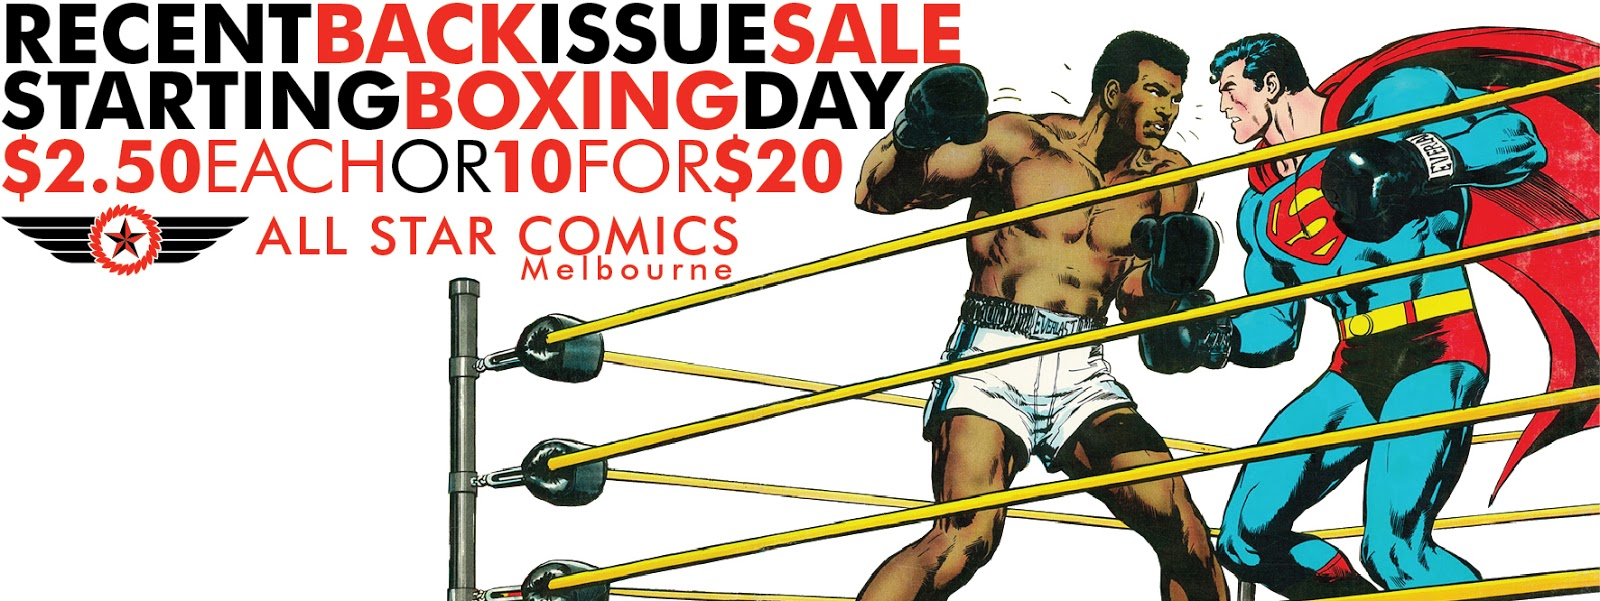 All Star Comics Melbourne: BOXING DAY RECENT BACK ISSUE ...